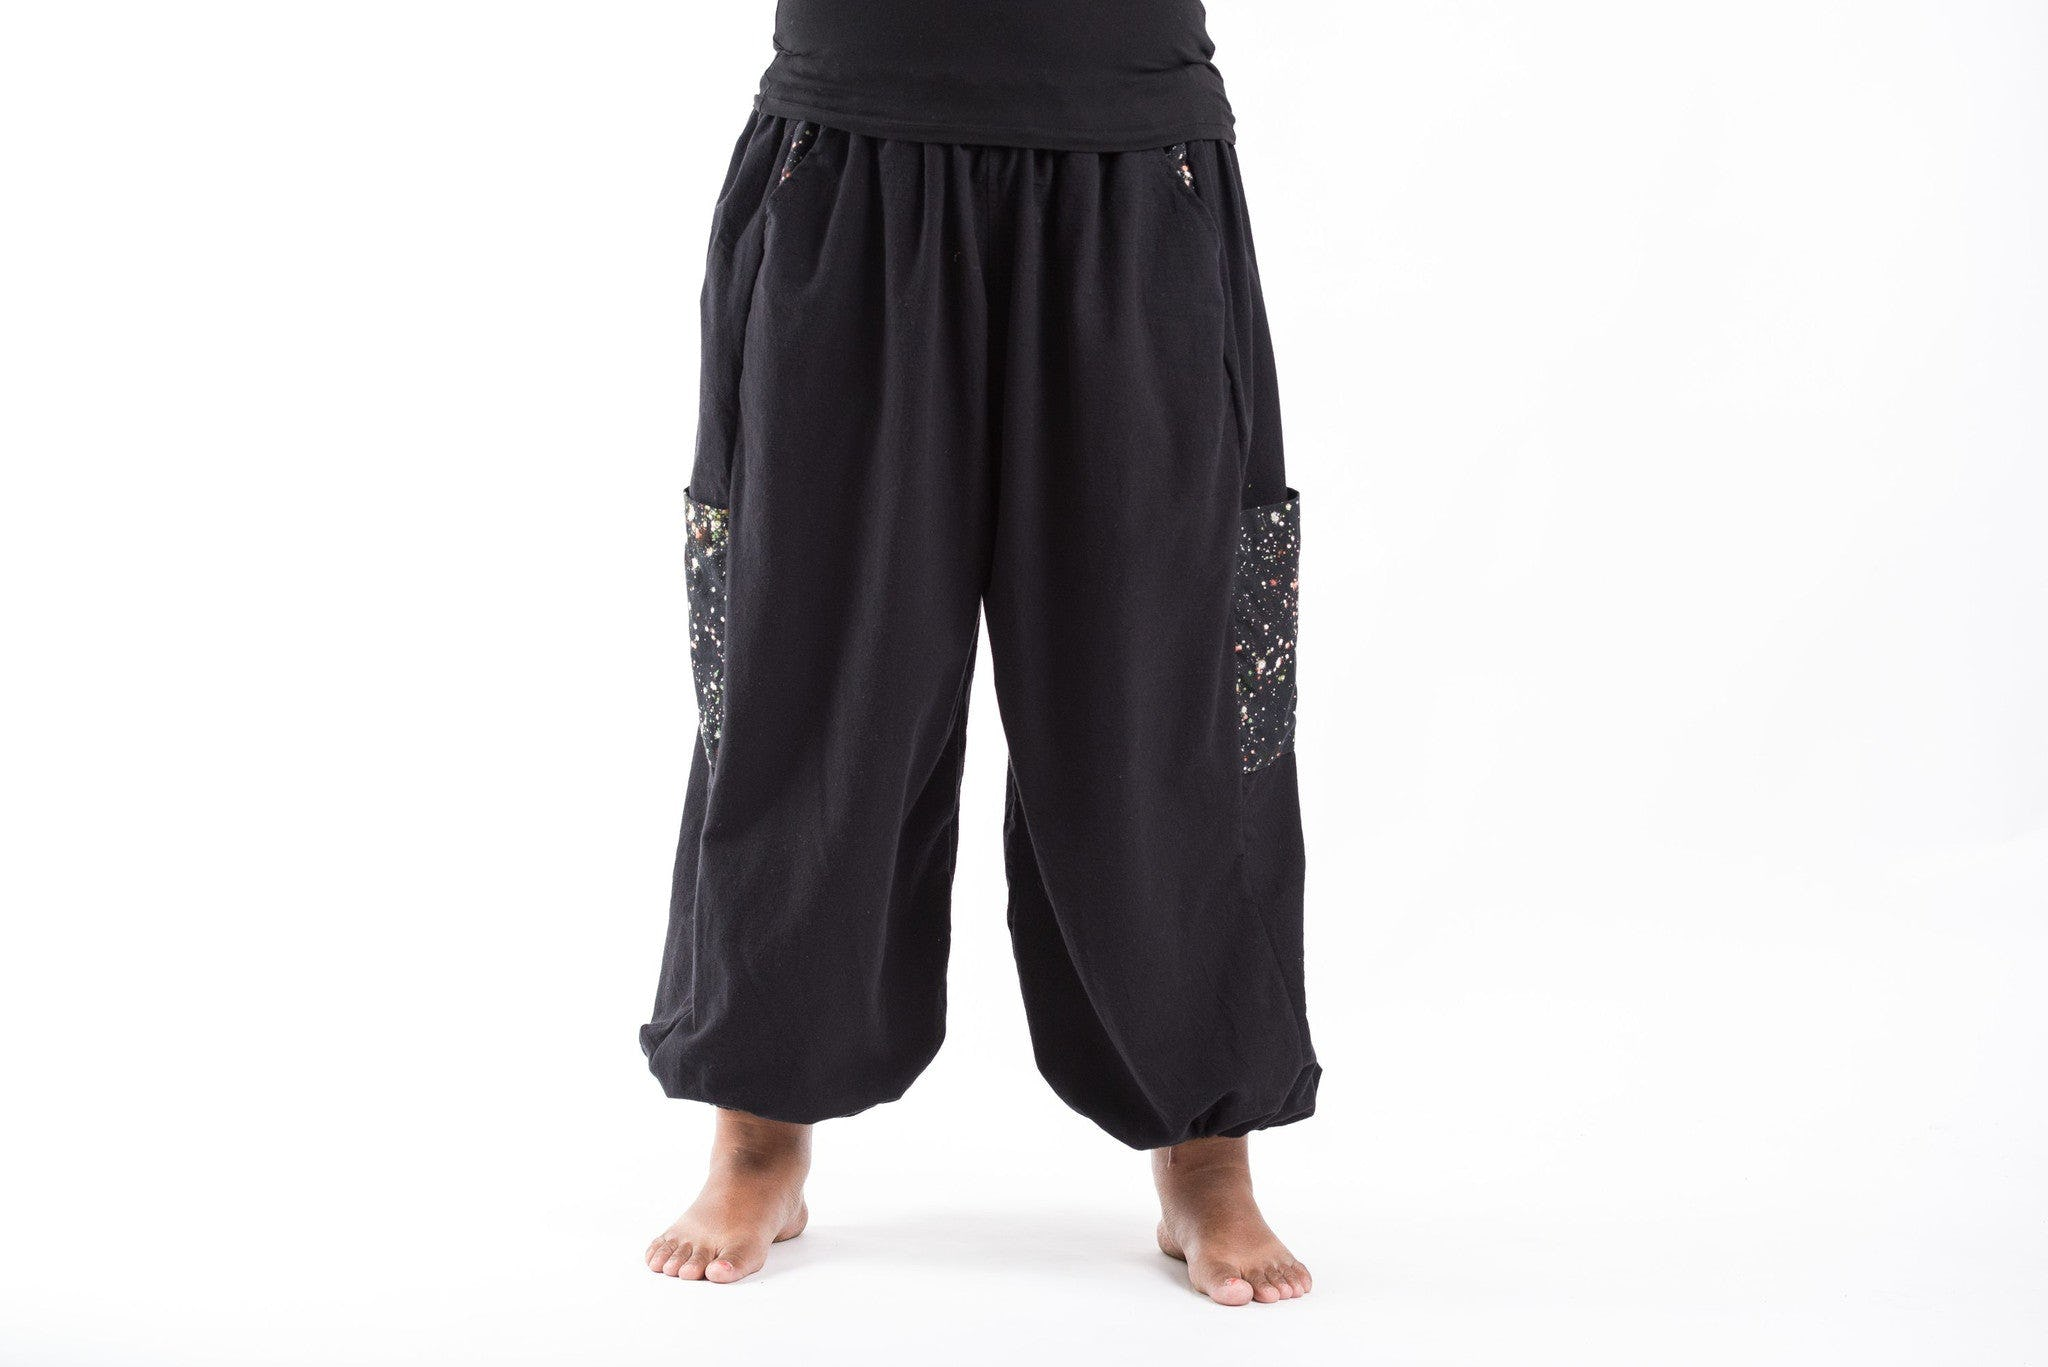 PLUS SIZE Cotton Women Unisex Pants in Black – Harem Pants